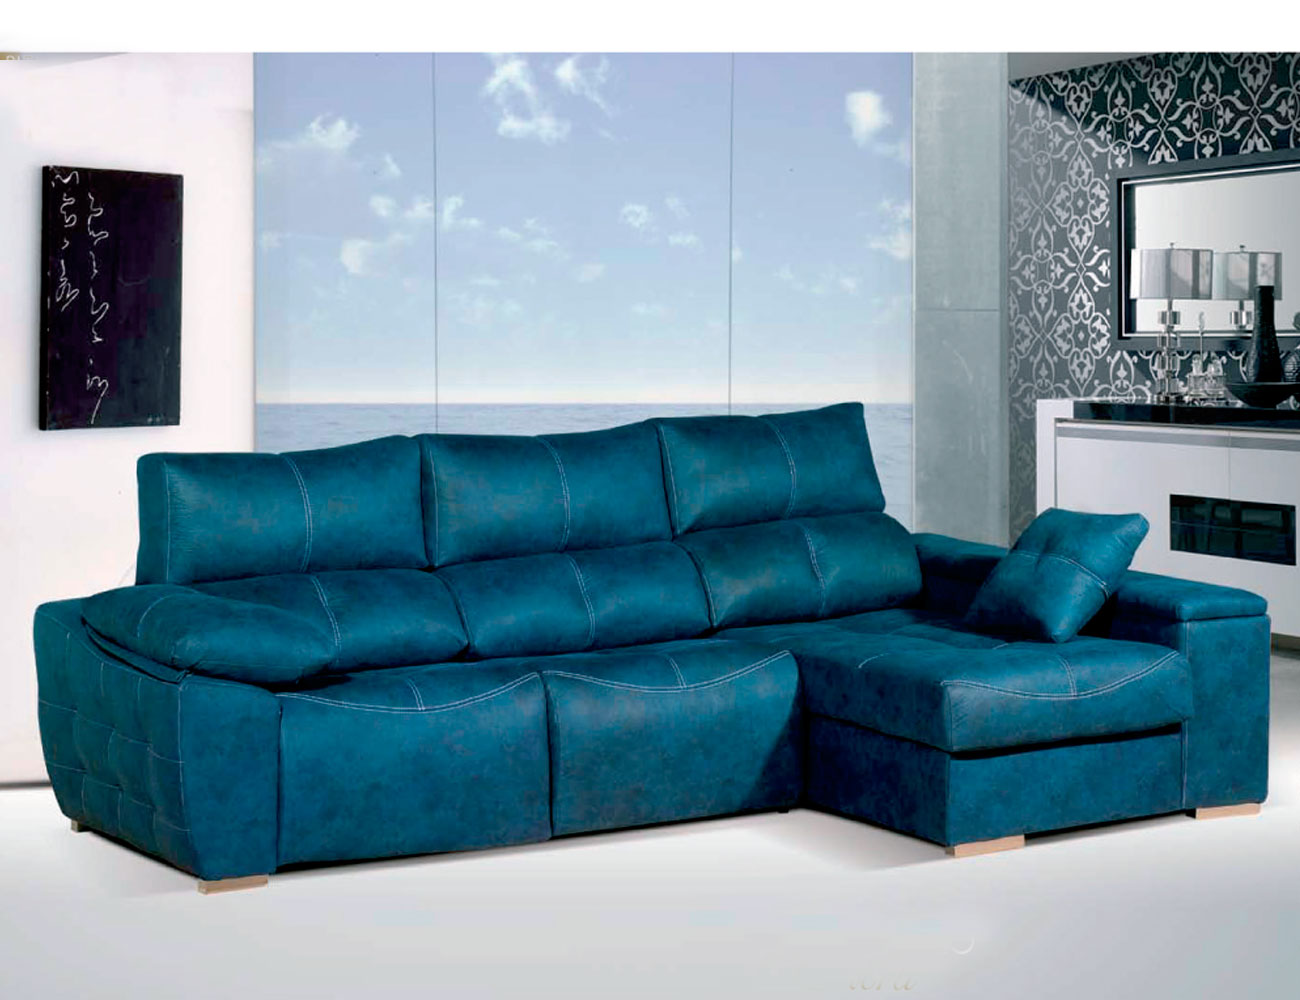 Sofa chaiselongue relax 2 motores anti manchas turquesa22